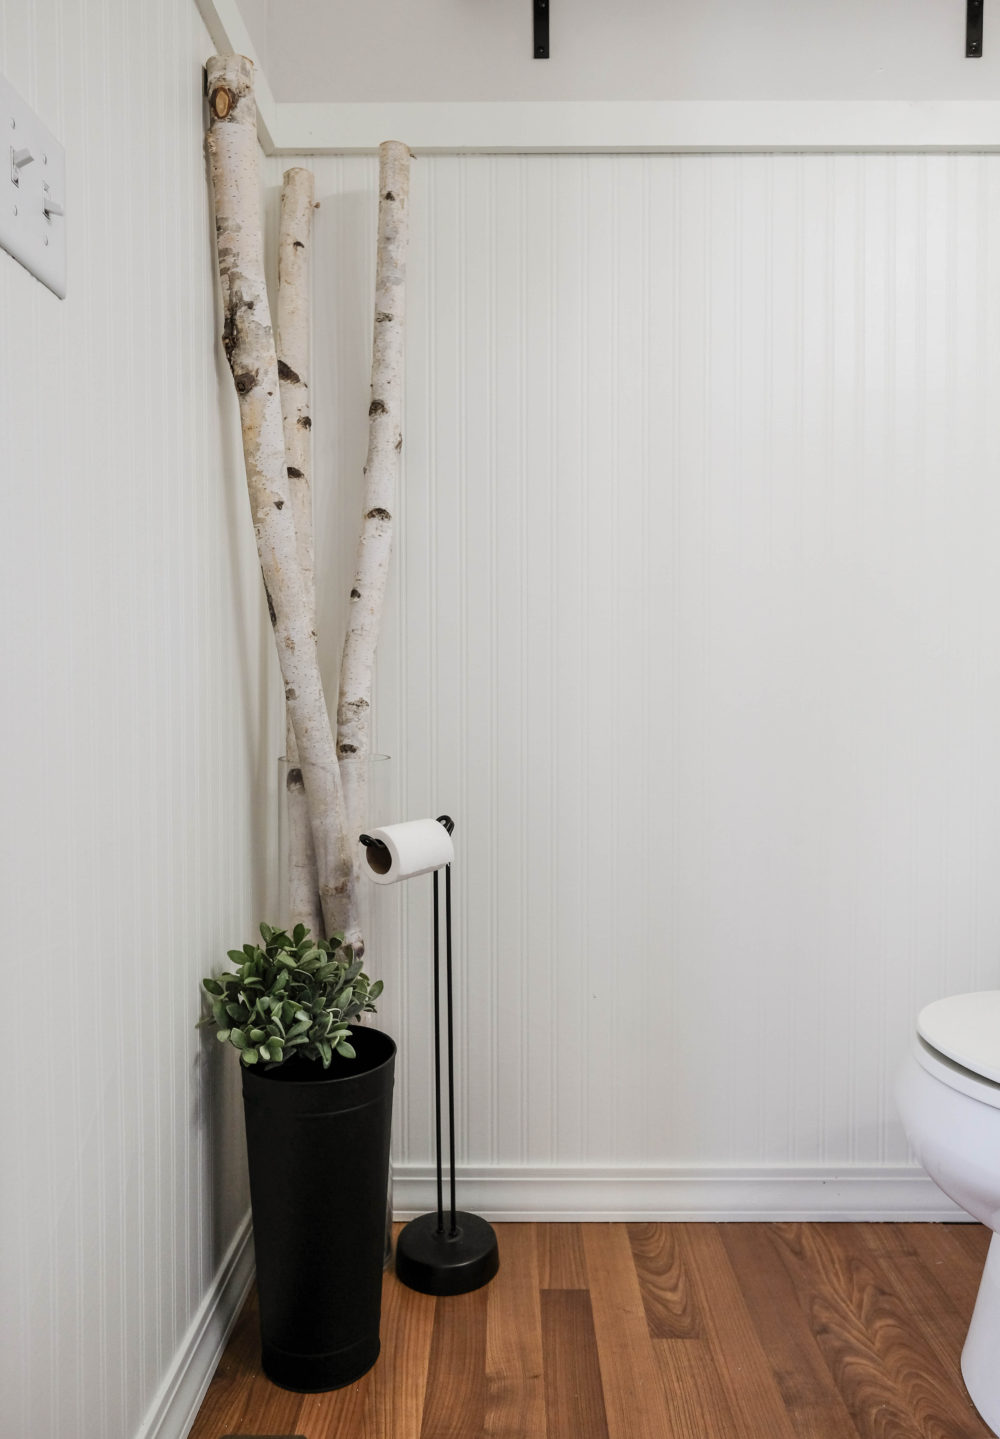 budget bathroom decor, birch branches and toilet paper holder